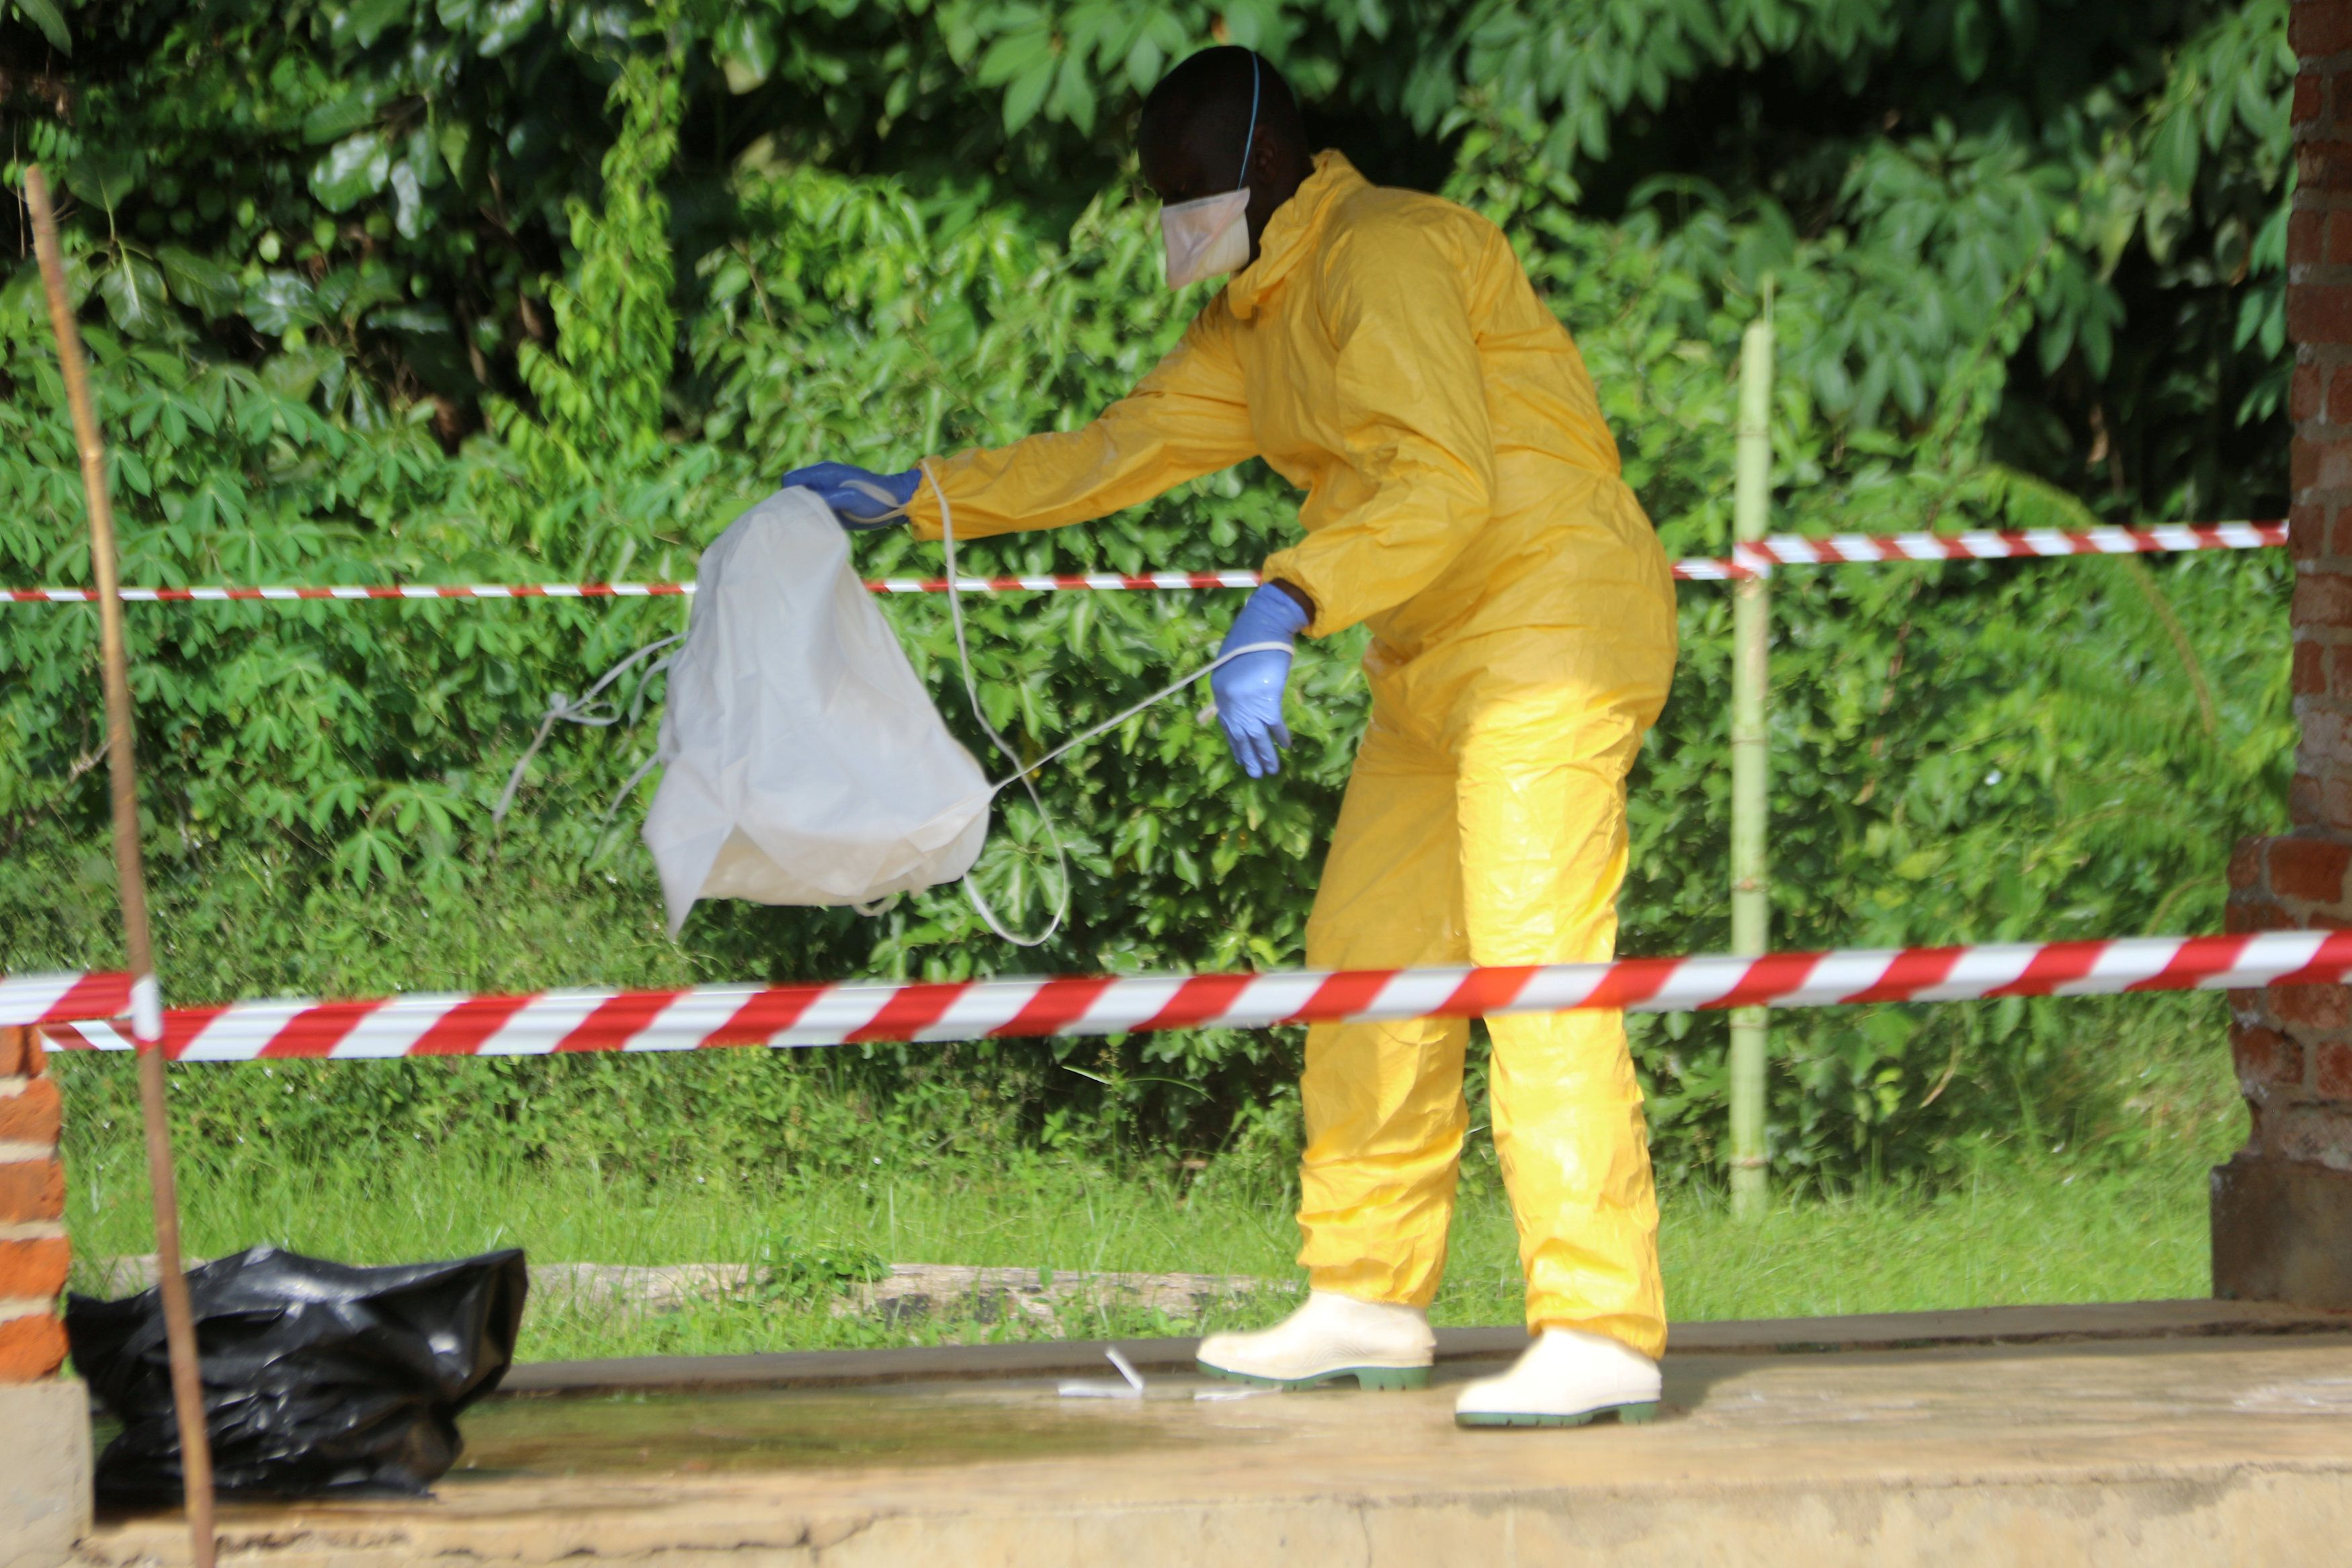 In DR Congo identified 11 new cases of infection with Ebola